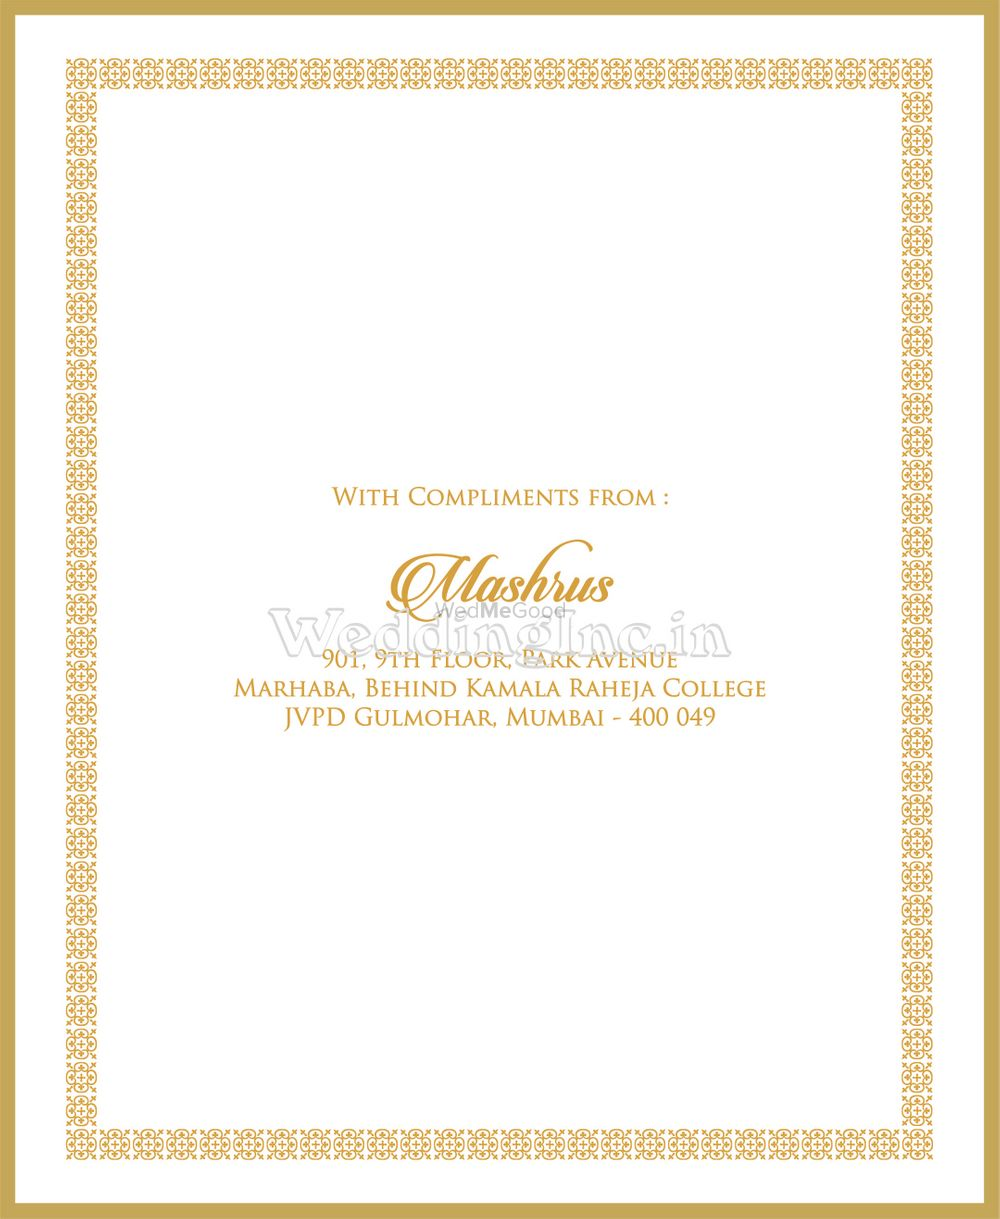 Photo By Wedding Inc - Invitations